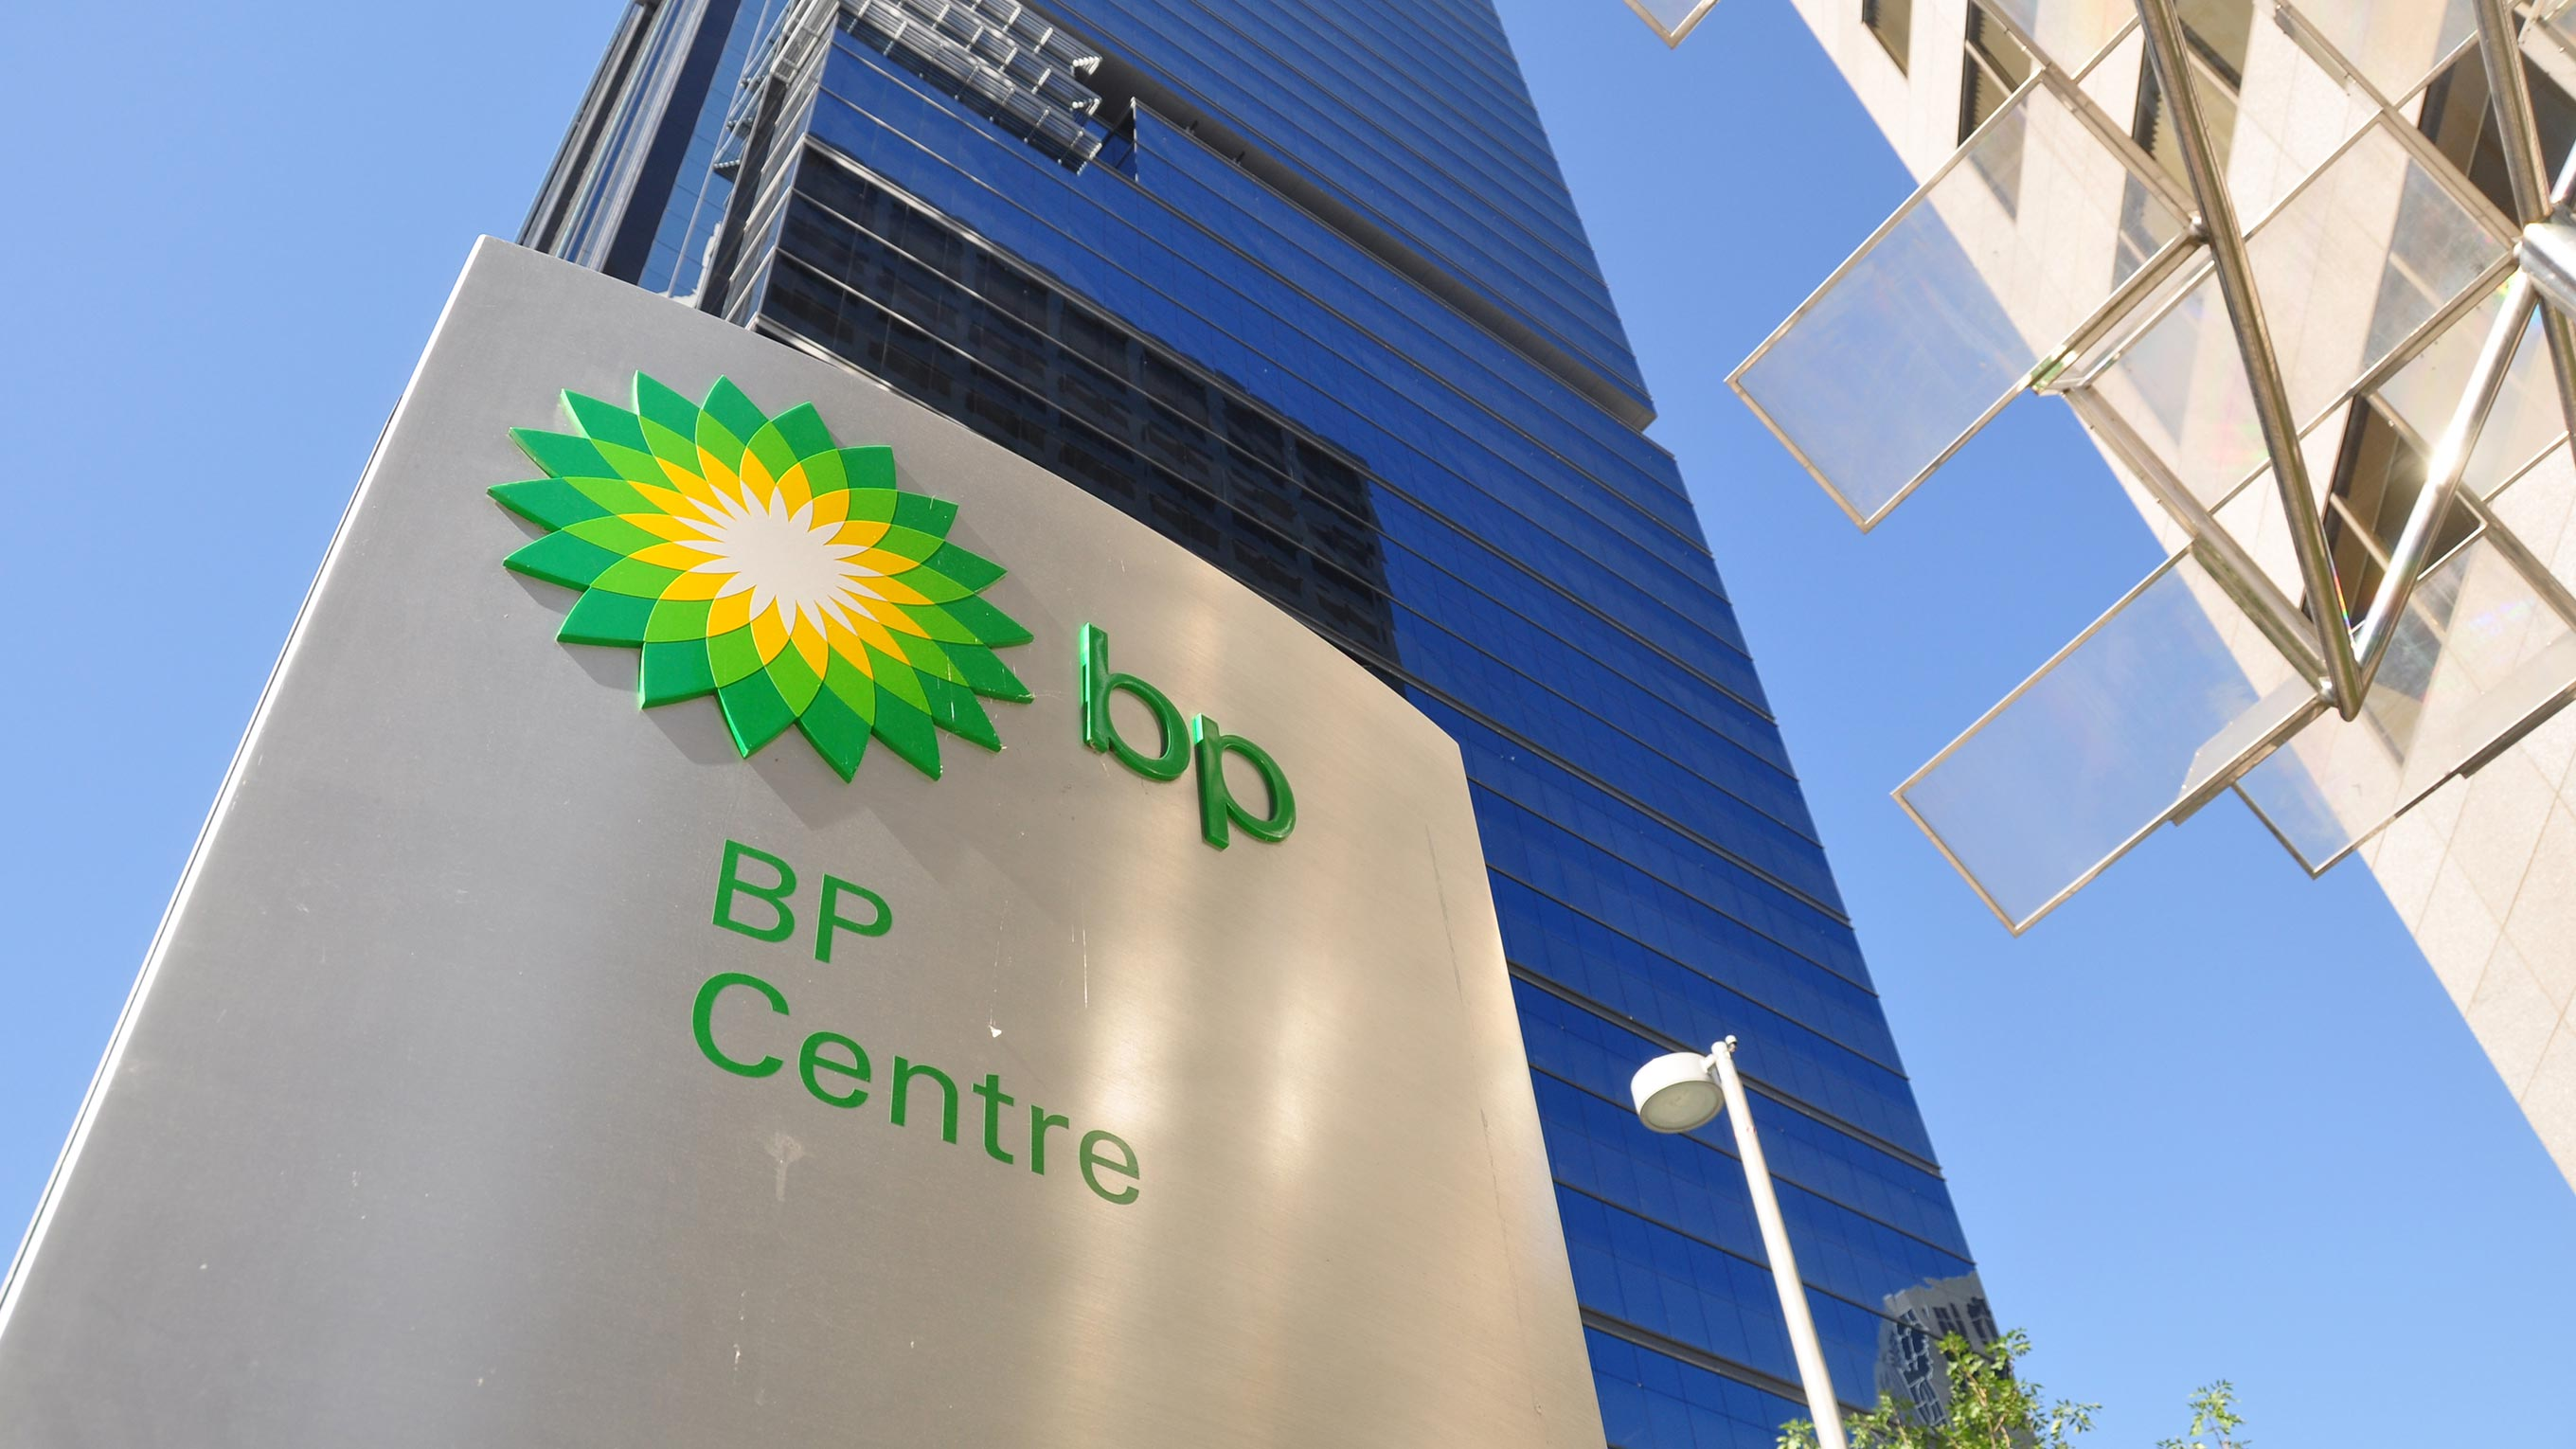 BP is leaving Emerging Market oil but could return in new ways